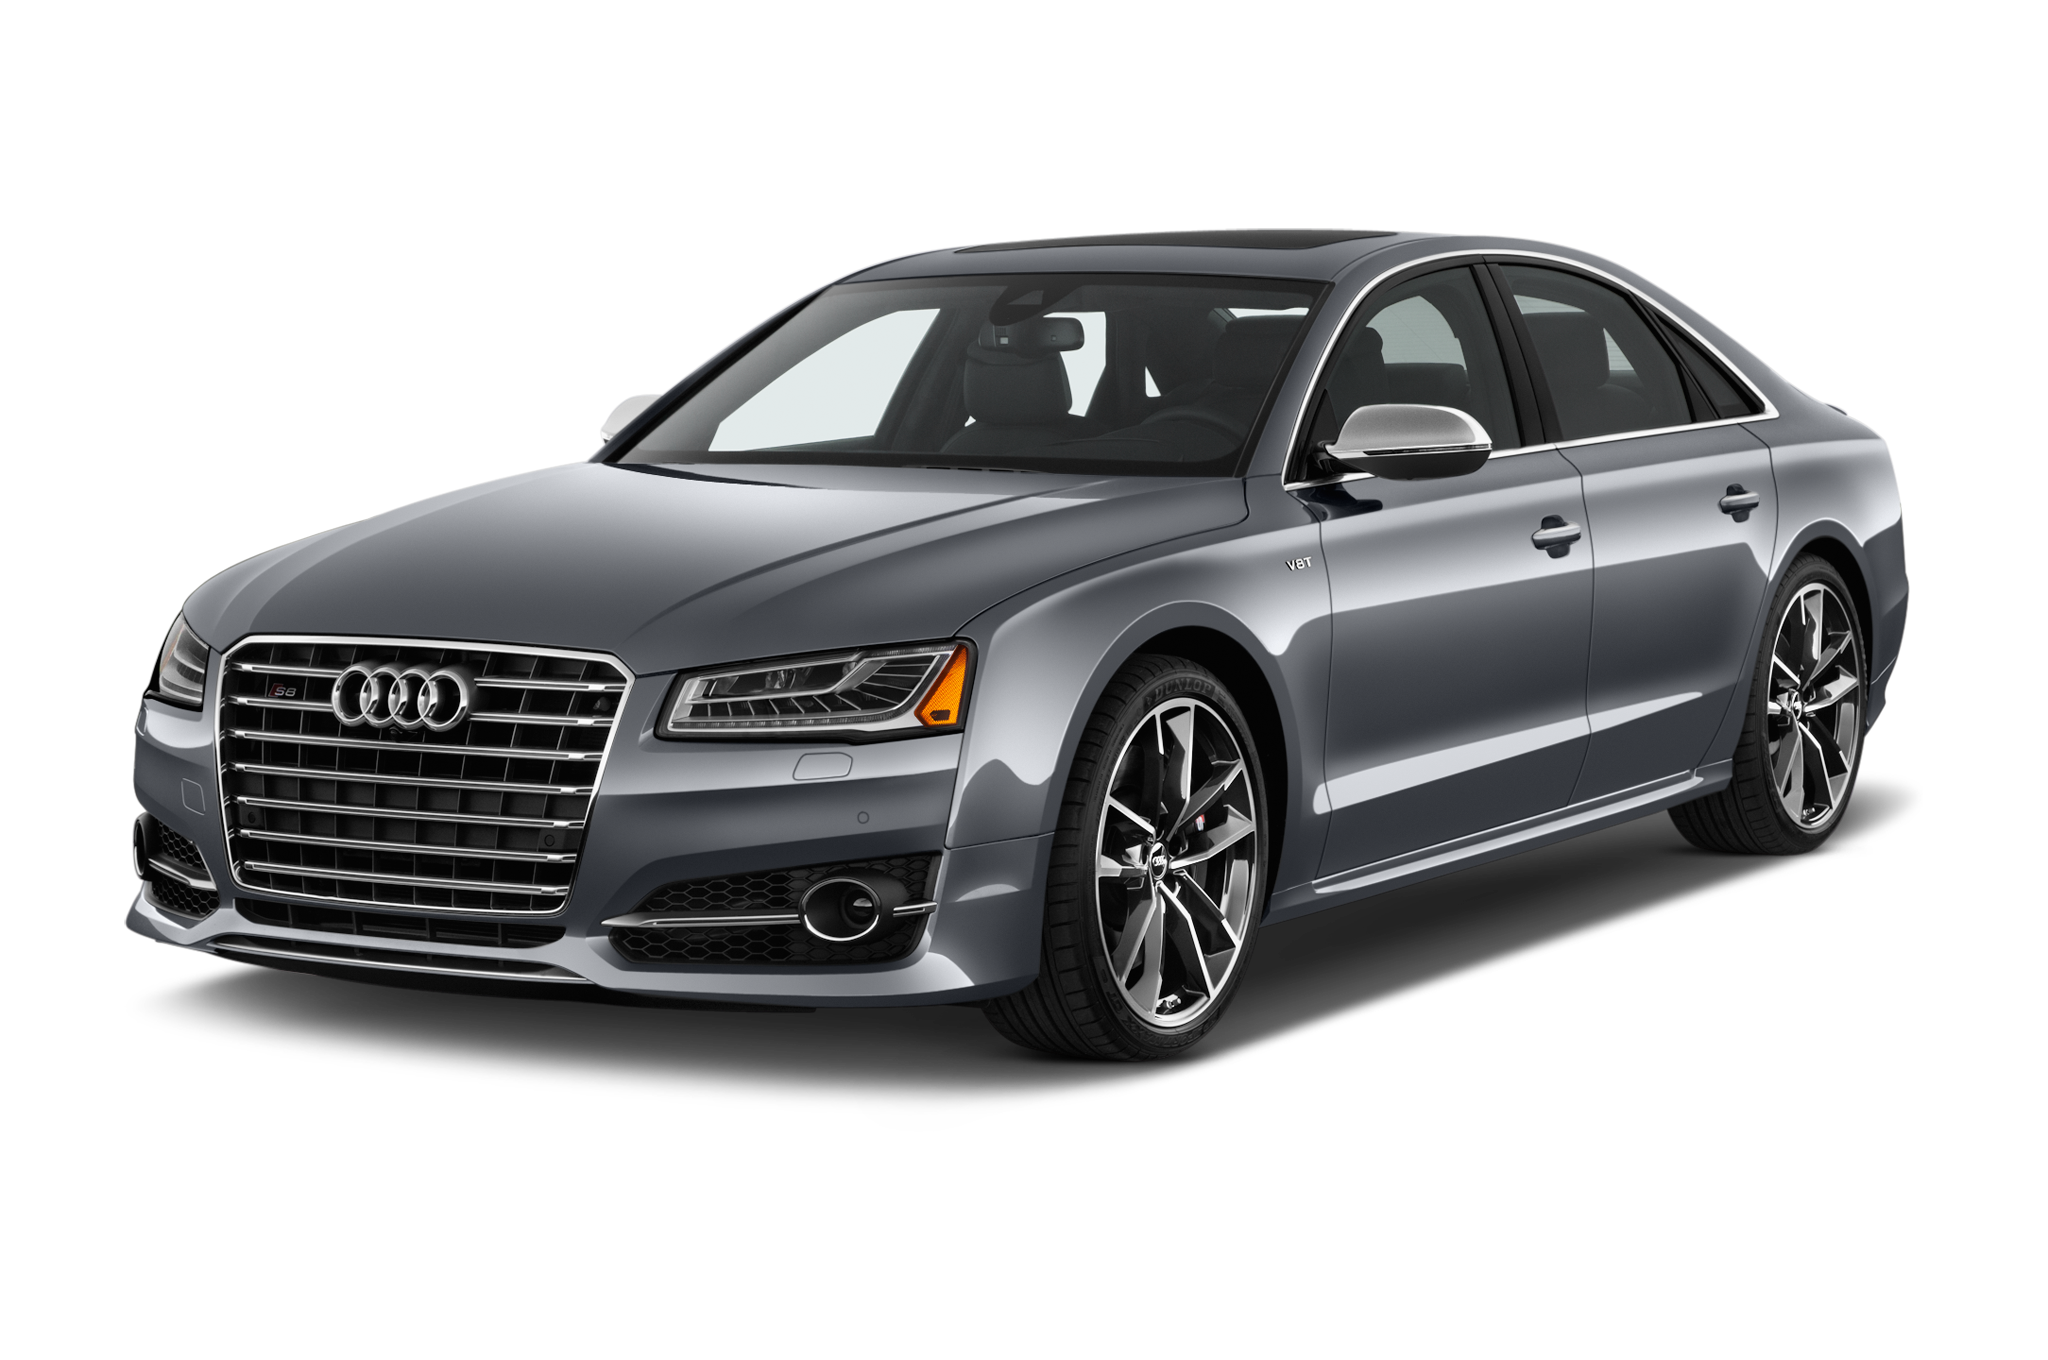 new audi s8 cars - prices & overview